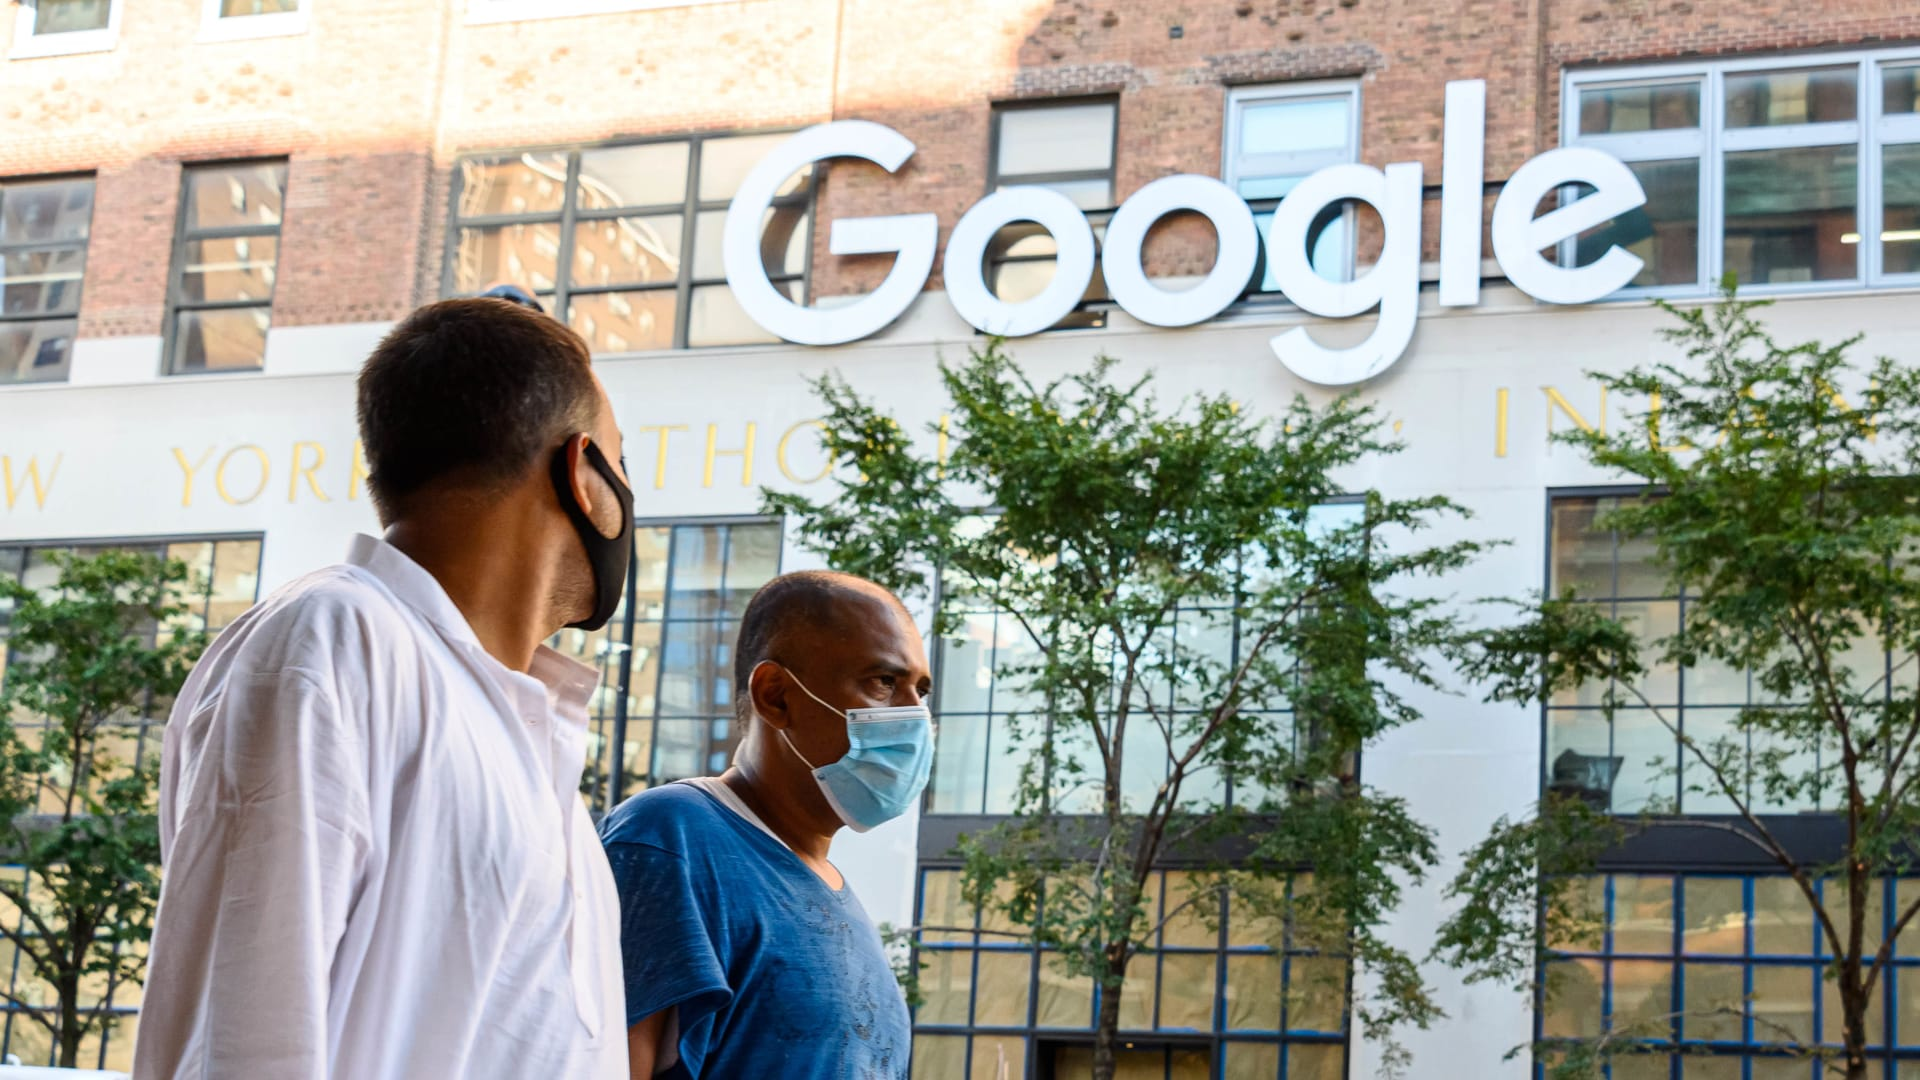 Google Just Got Very Bad News and It Could Change the Way You Use the Internet